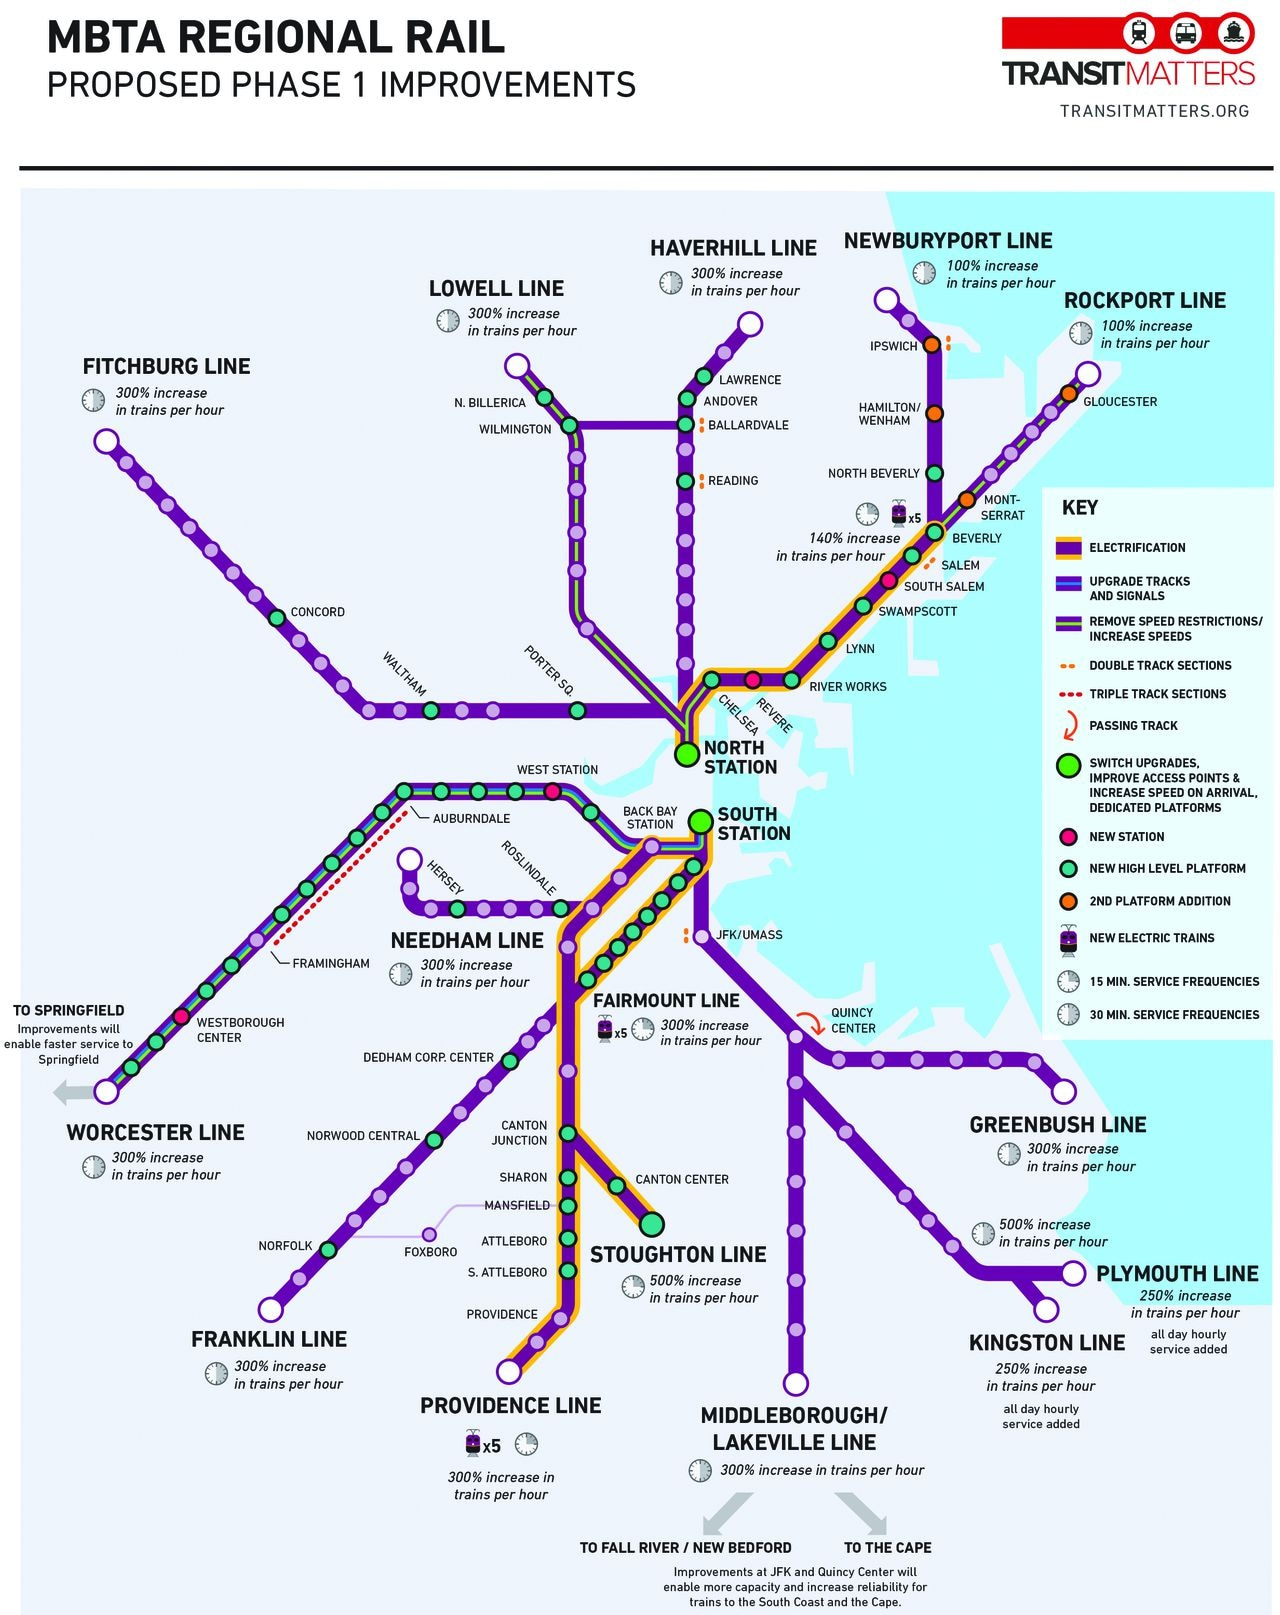 "This map, created by the advocacy group TransitMatters, envisions the first phase of improvements that could turn our existing commuter rail network into a ""regional rail"" system. It expands on a plan for upgrading commuter rail that the MBTA's Fiscal and Management Control Board approved in 2019. TransitMatters' executive director, Jarred Johnson, says regional rail would function more like a subway system does, with shorter trains that run more frequently and at higher speeds. Some stations and tracks would need to be added.TRANSITMATTERS"